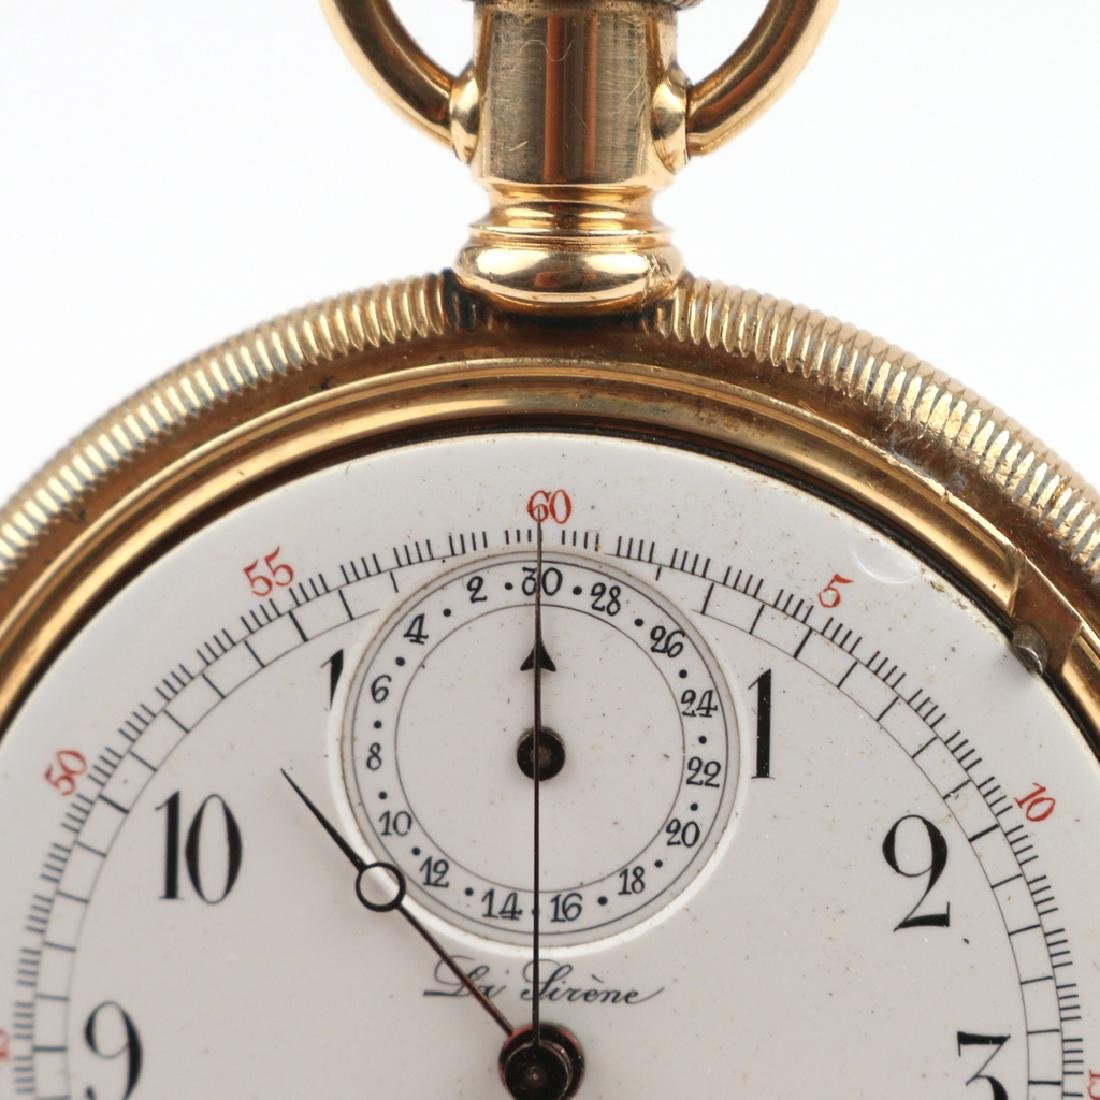 SWISS 'LA SIRENE' GOLD CHRONOGRAPH POCKETWATCH - 7